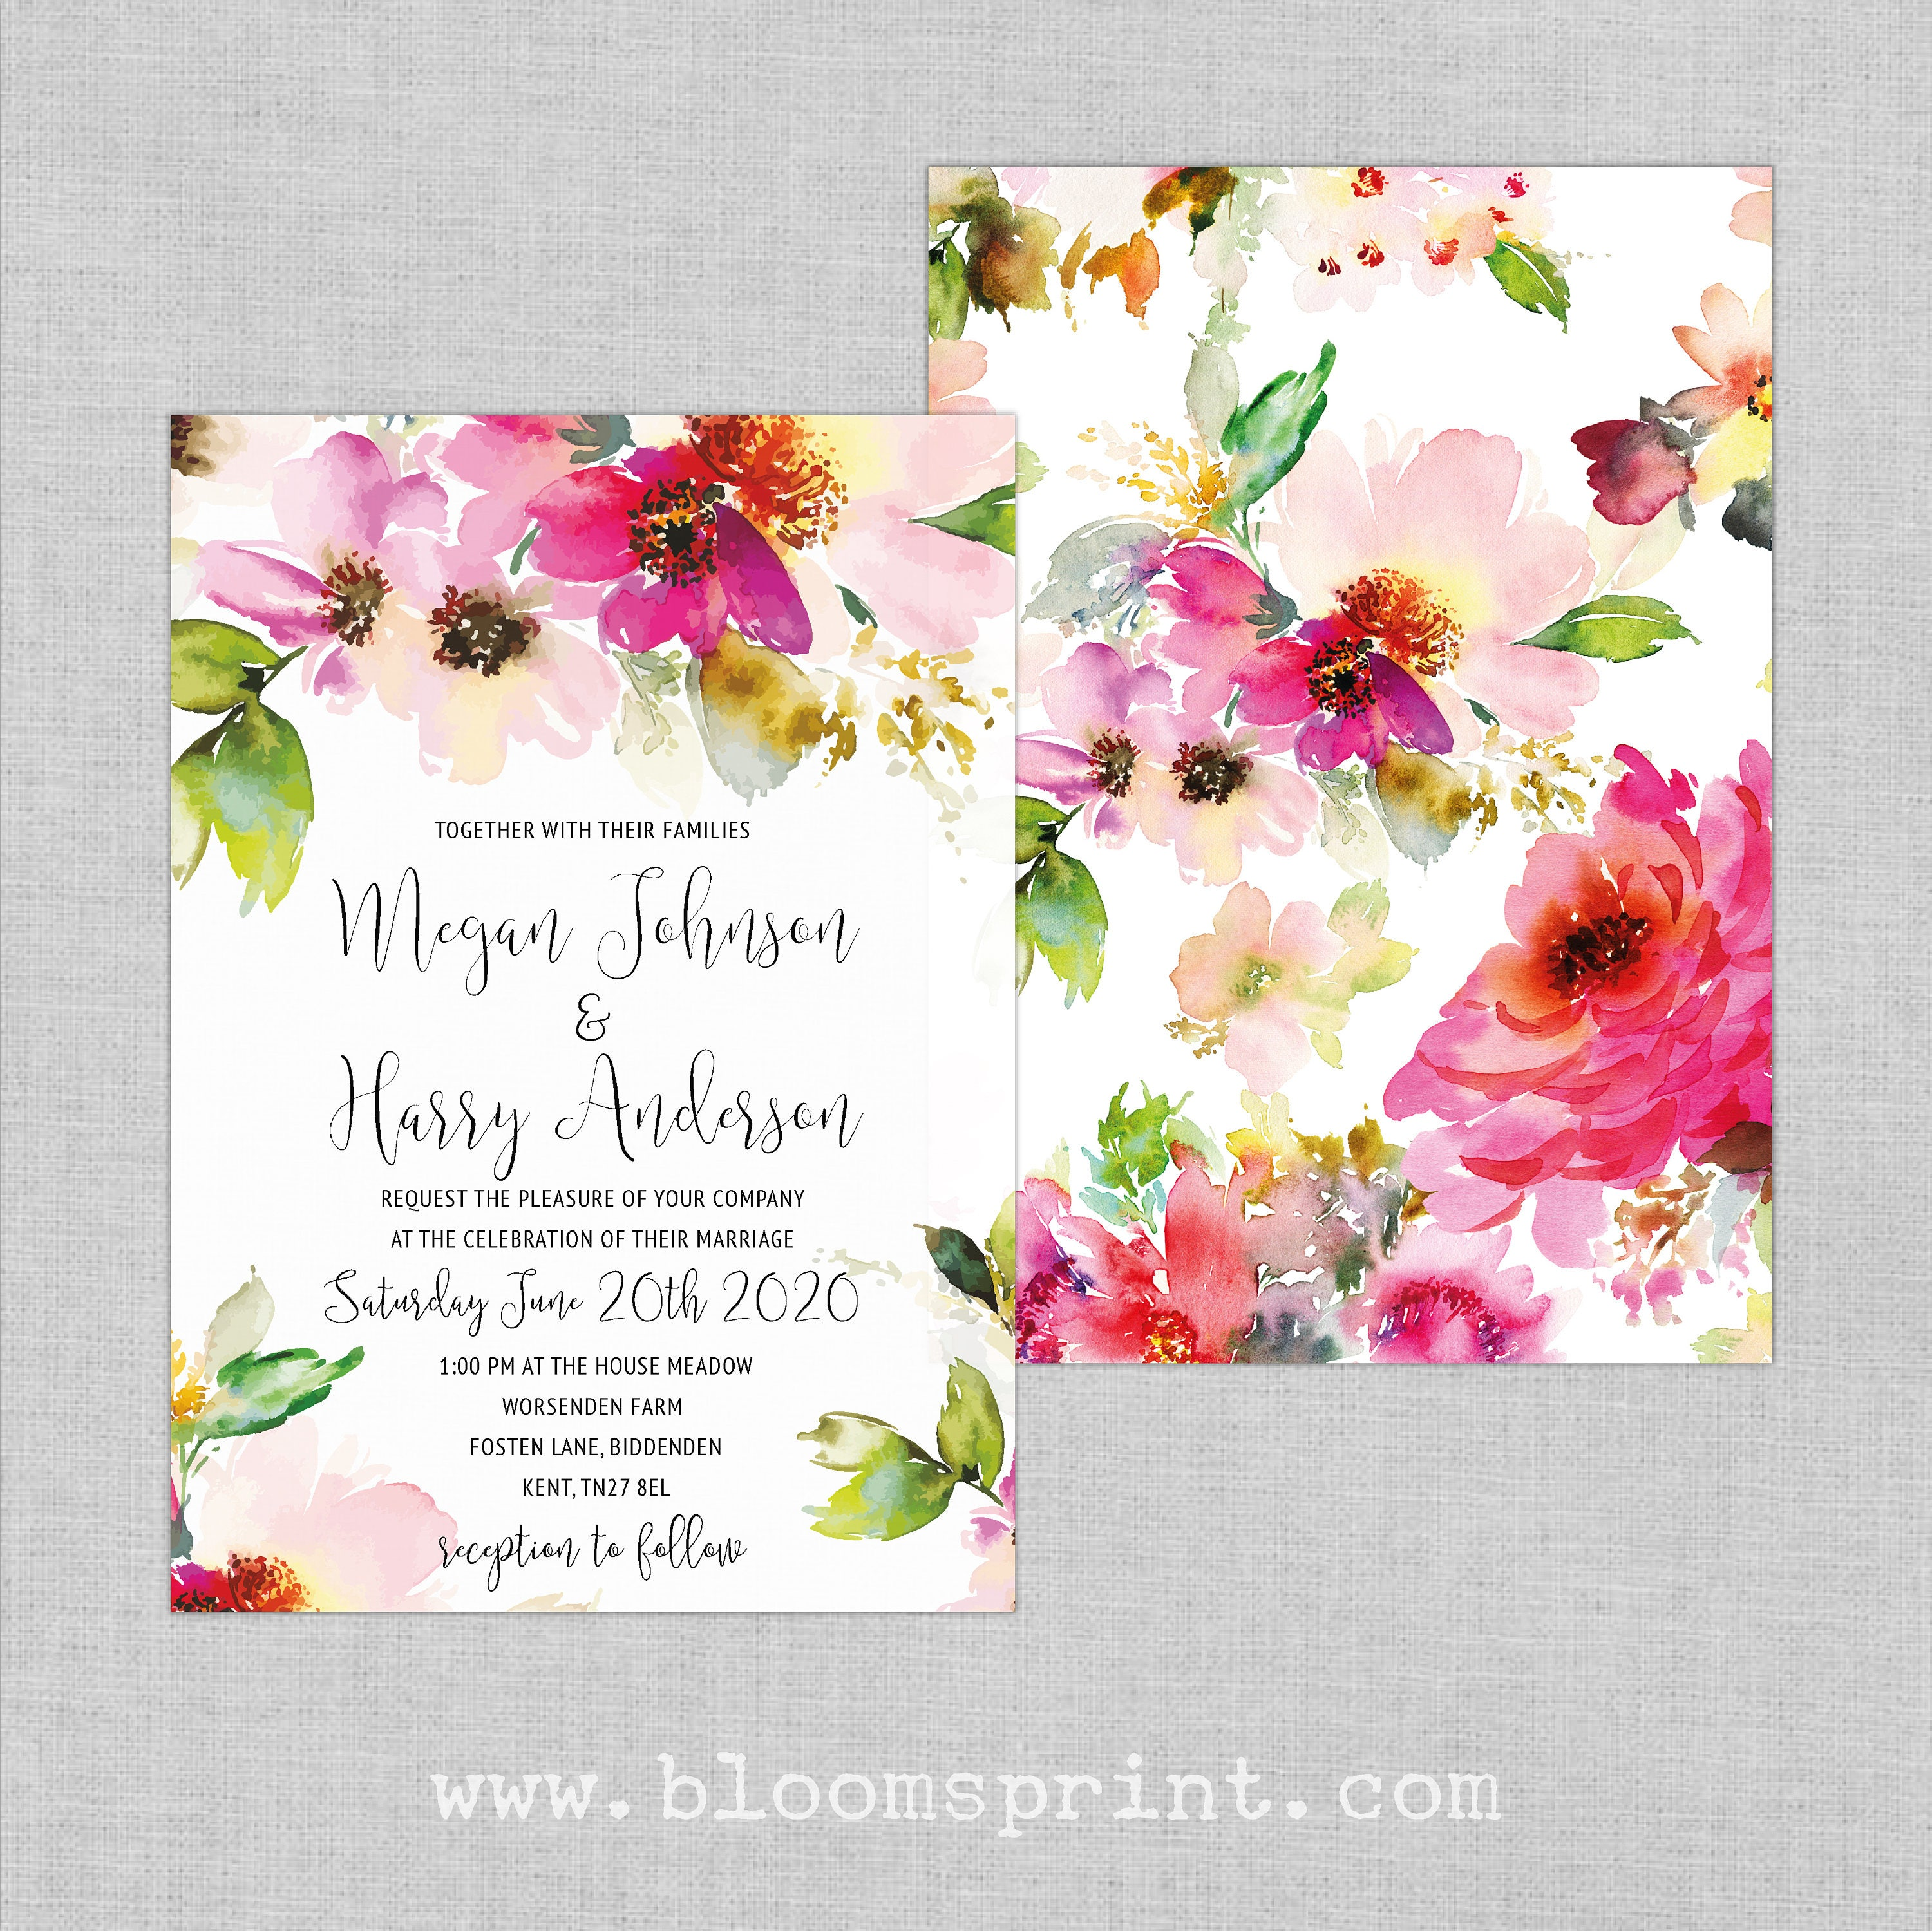 Watercolor wedding invitation template, Bohemian floral wedding ...